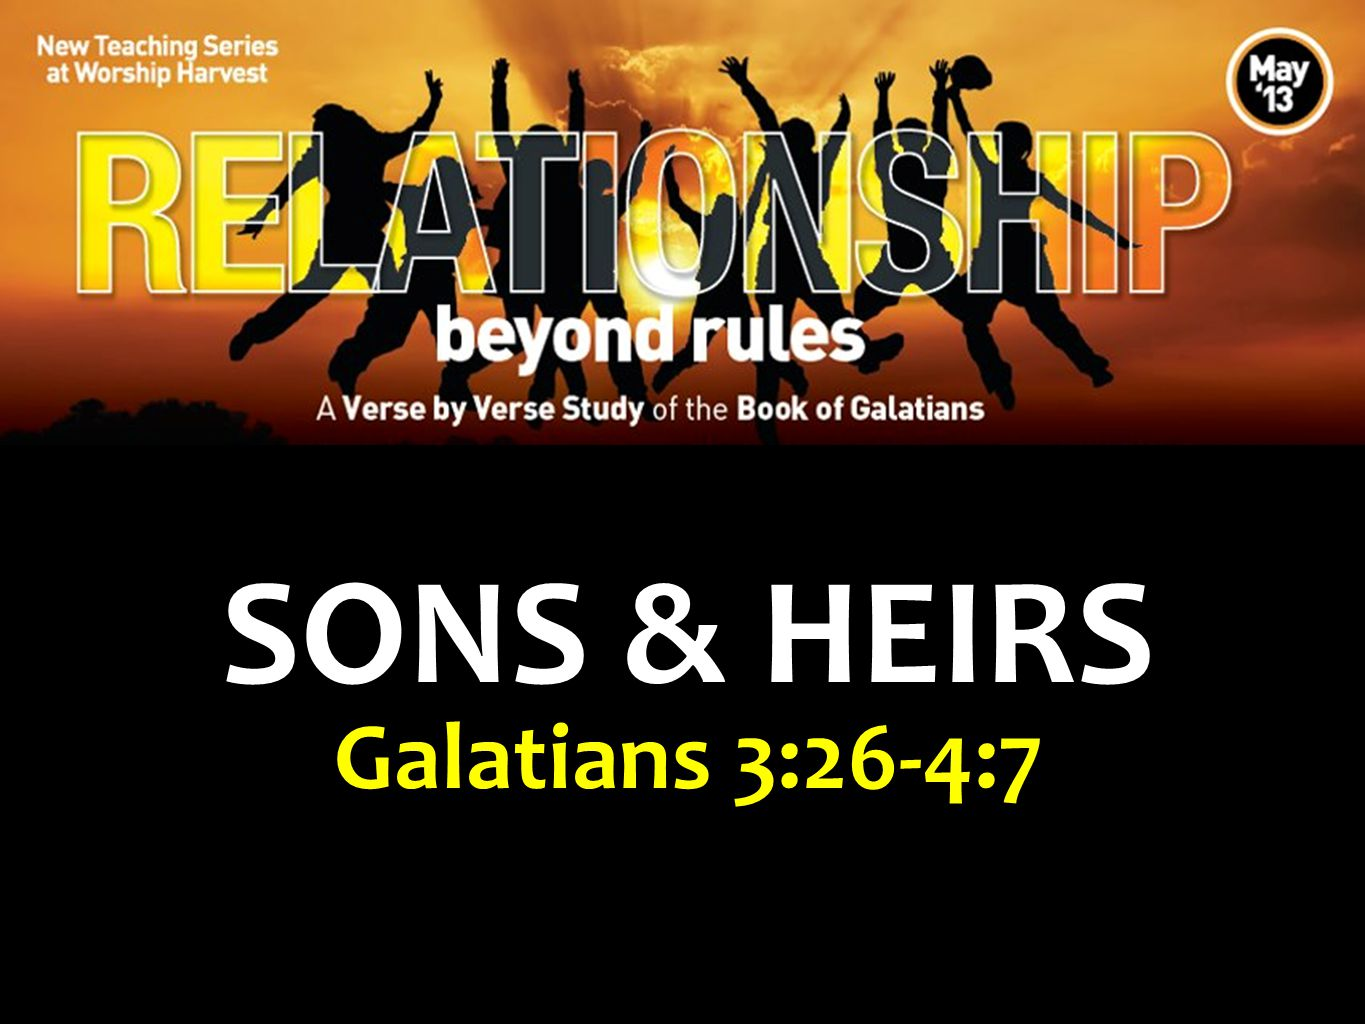 SONS & HEIRS Galatians 3:26-4:7 www.worshipharvest.org